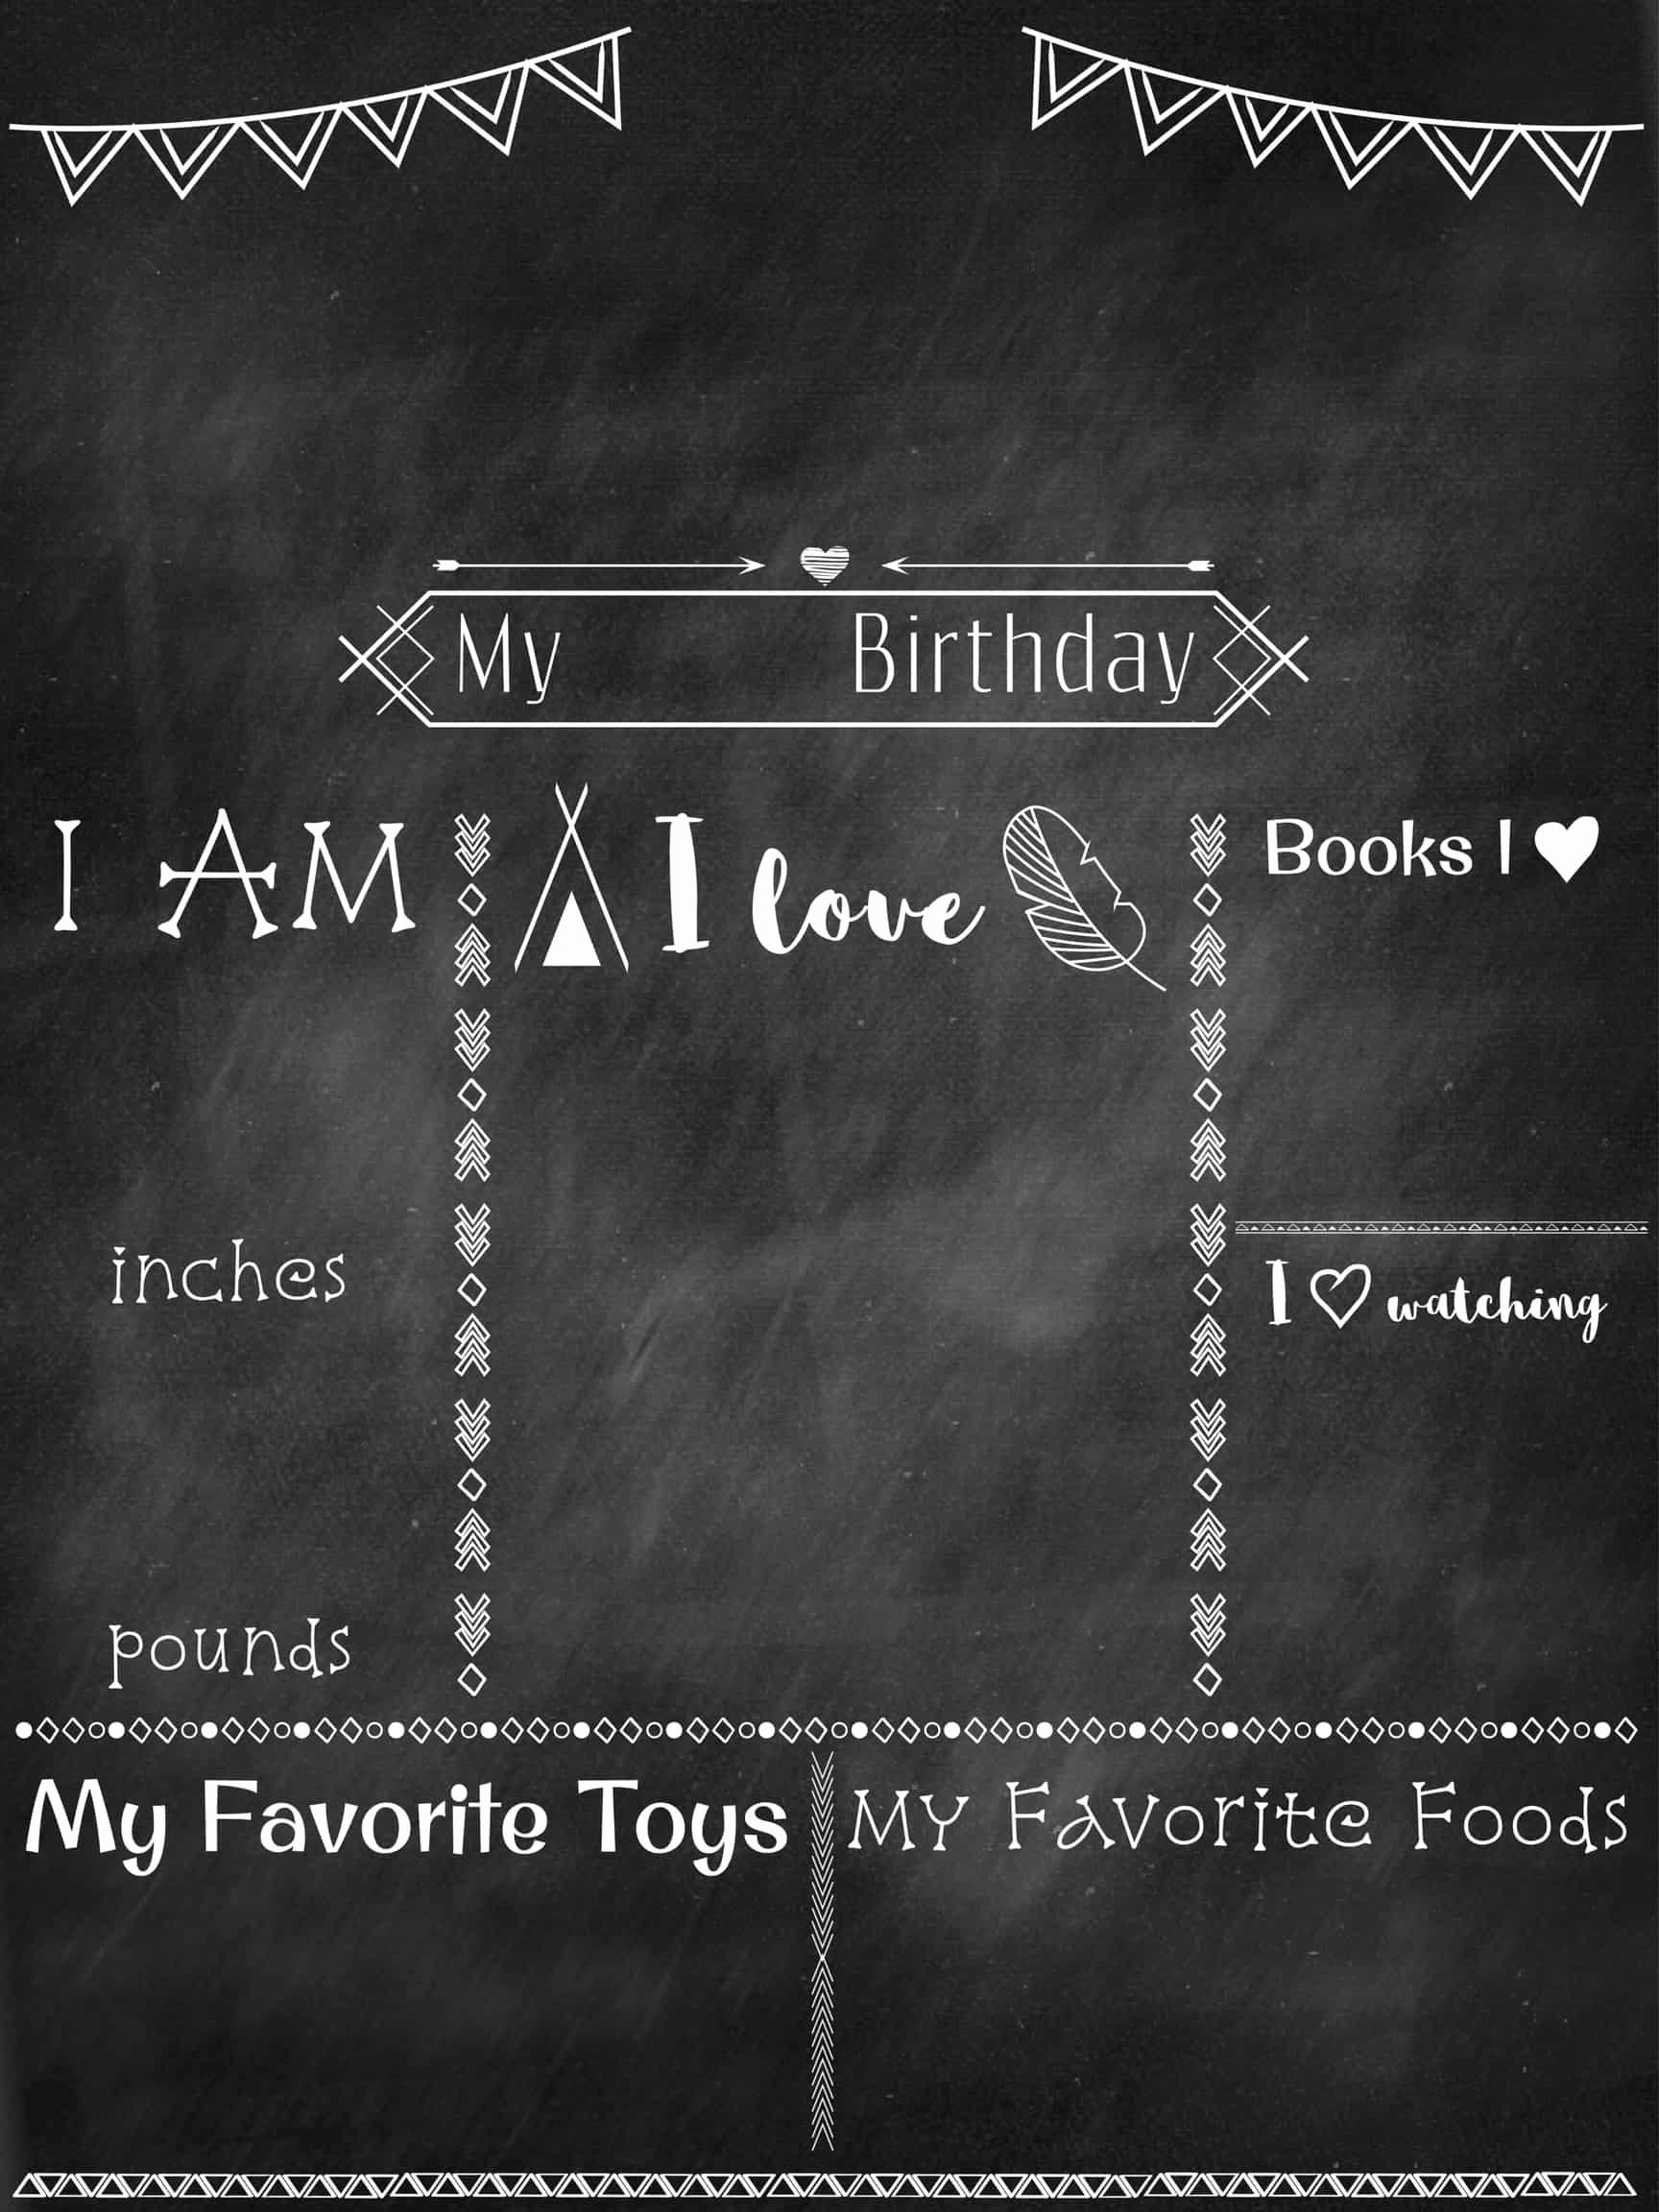 Chalkboard Poster Template Free Elegant Birthday Poster Template Free with Step by Step Tutorial